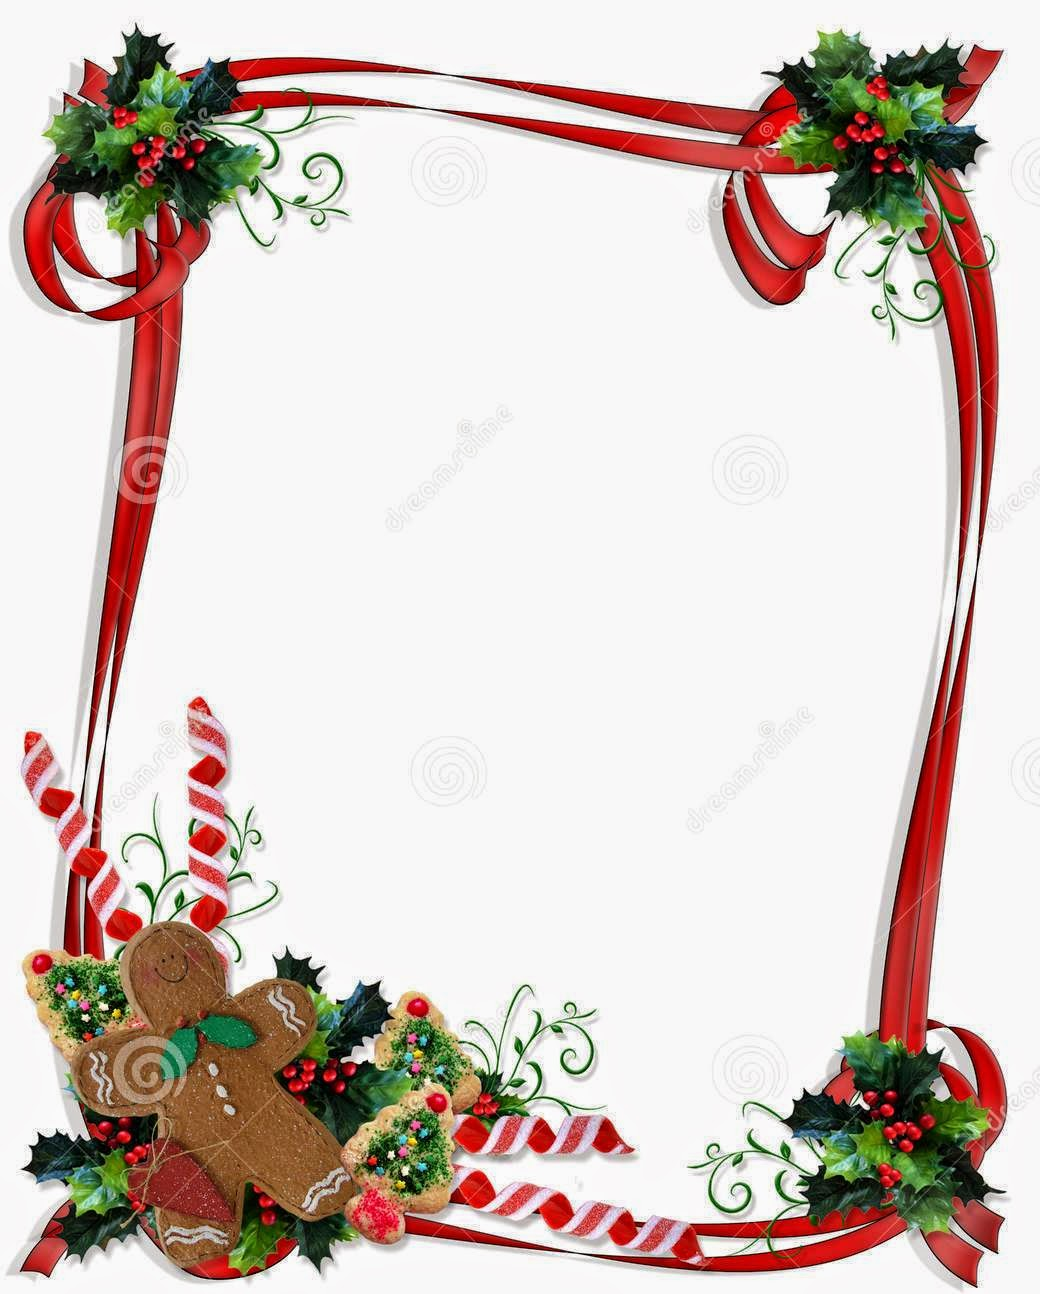 Free christmas clipart borders for mac.